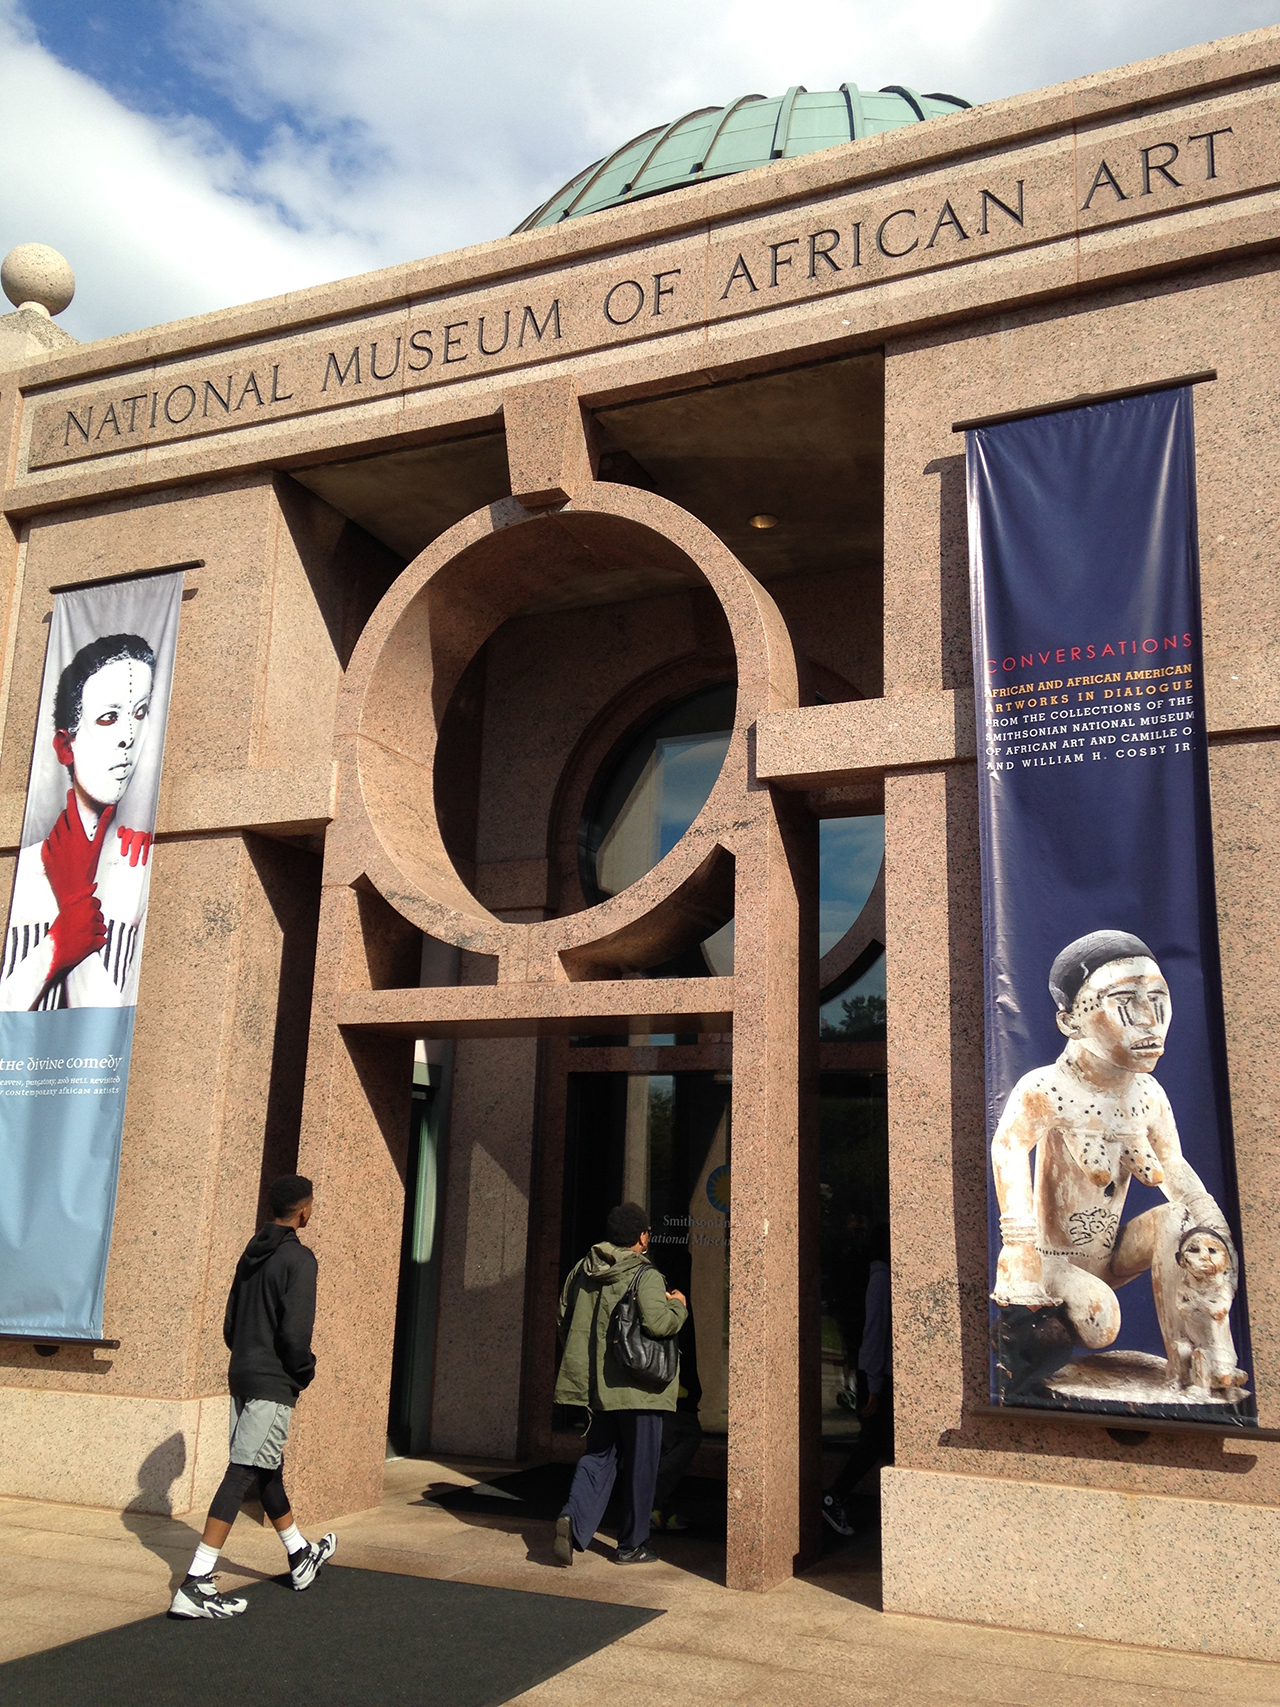 The Smithsonian National Museum of African Art (all photos by the author for Hyperallergic unless otherwise noted)